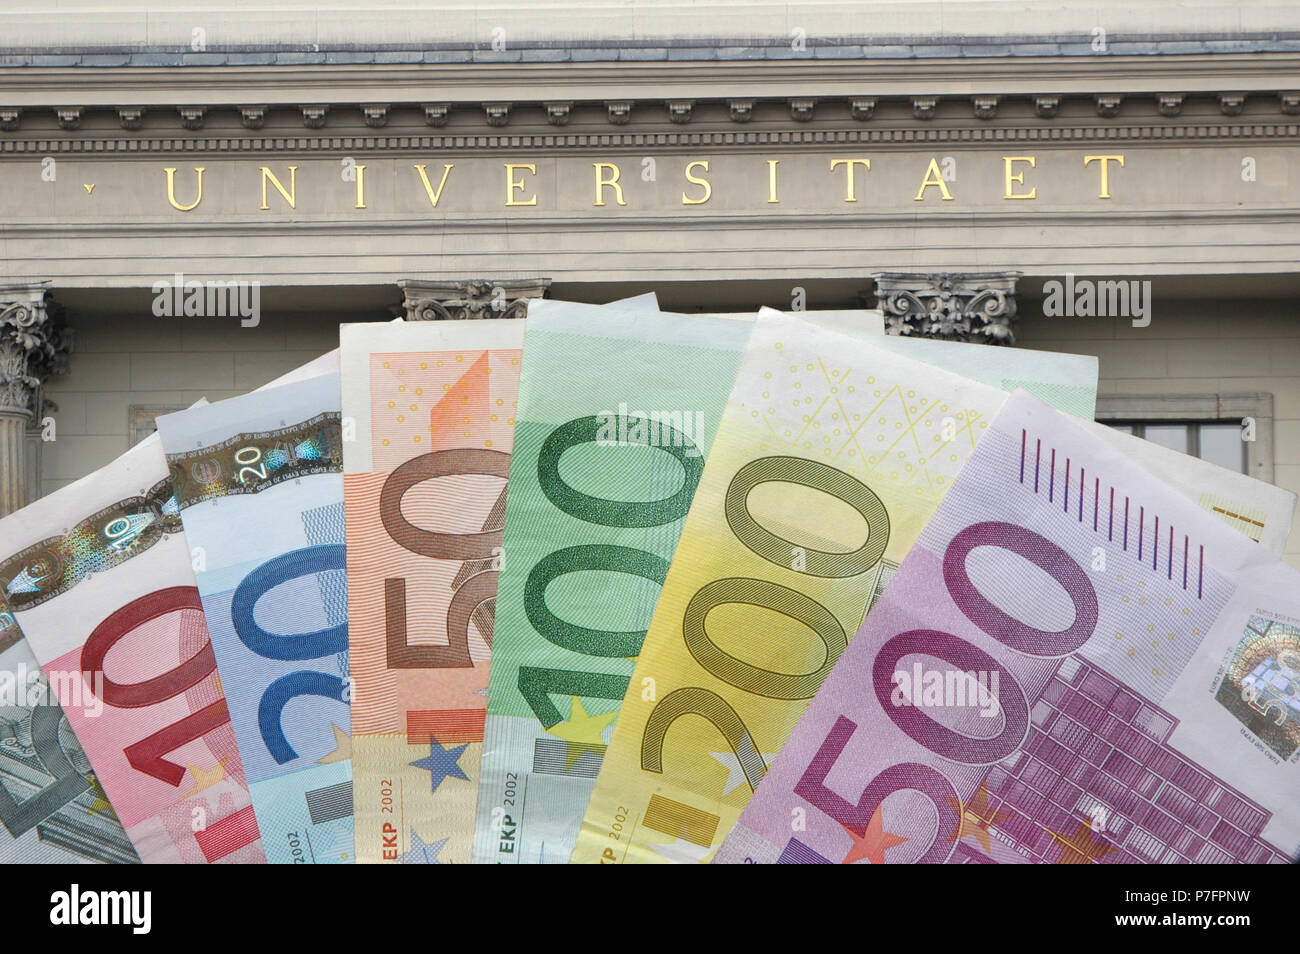 Bank notes in front of the university, symbol image for tuition fees, education and financing - Stock Image